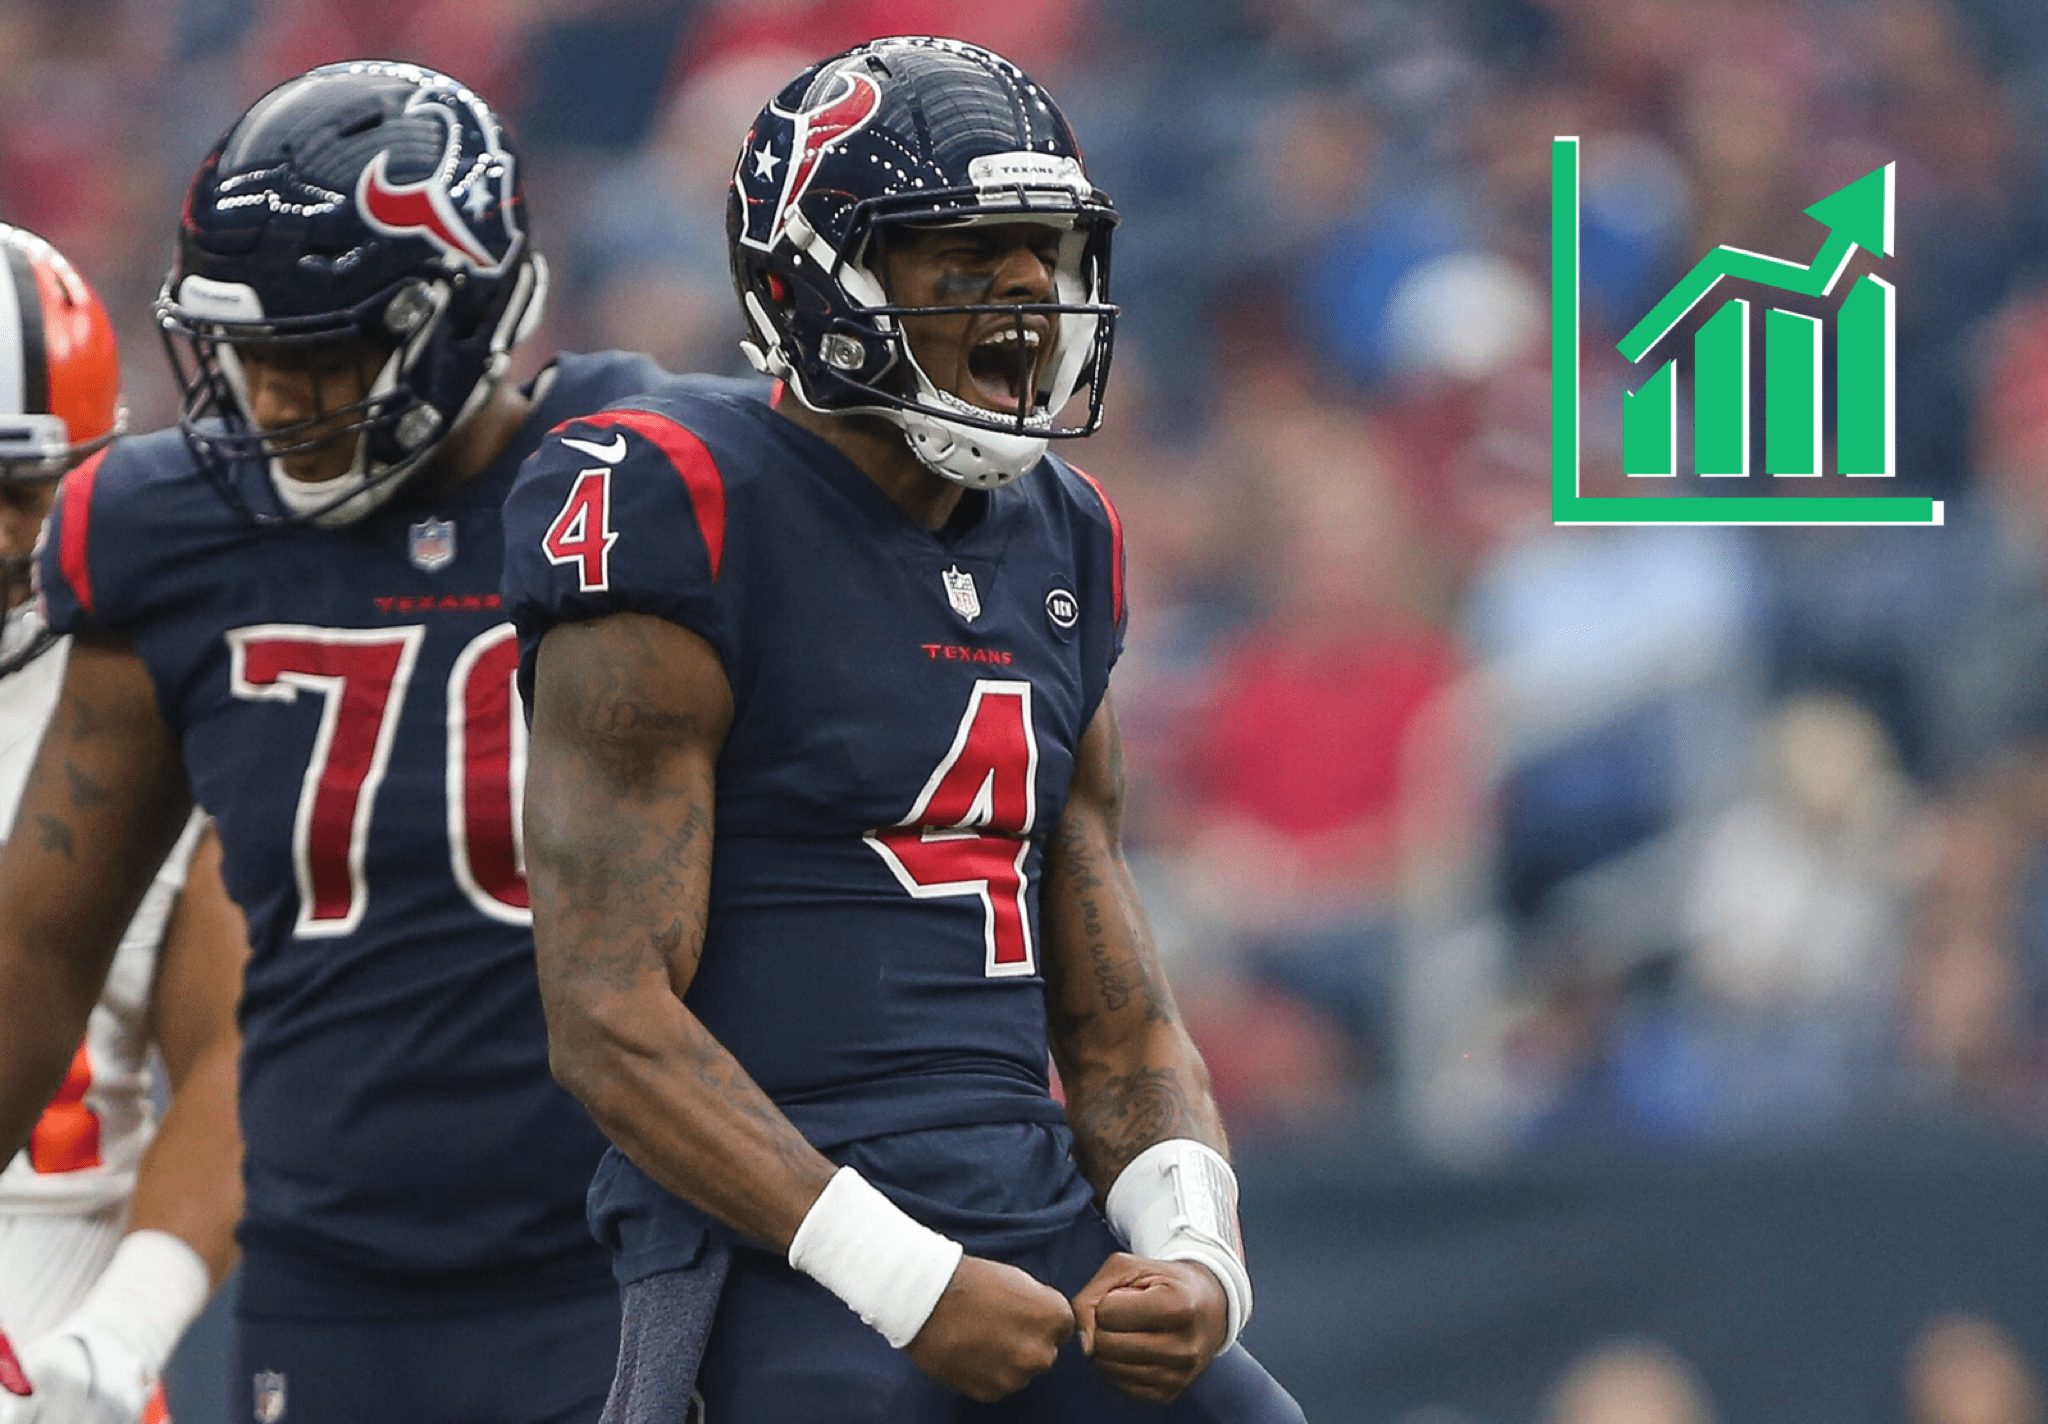 new arrival 971a7 2ccd6 Deshaun Watson Shoots up Fantasy Rankings After Texans ...